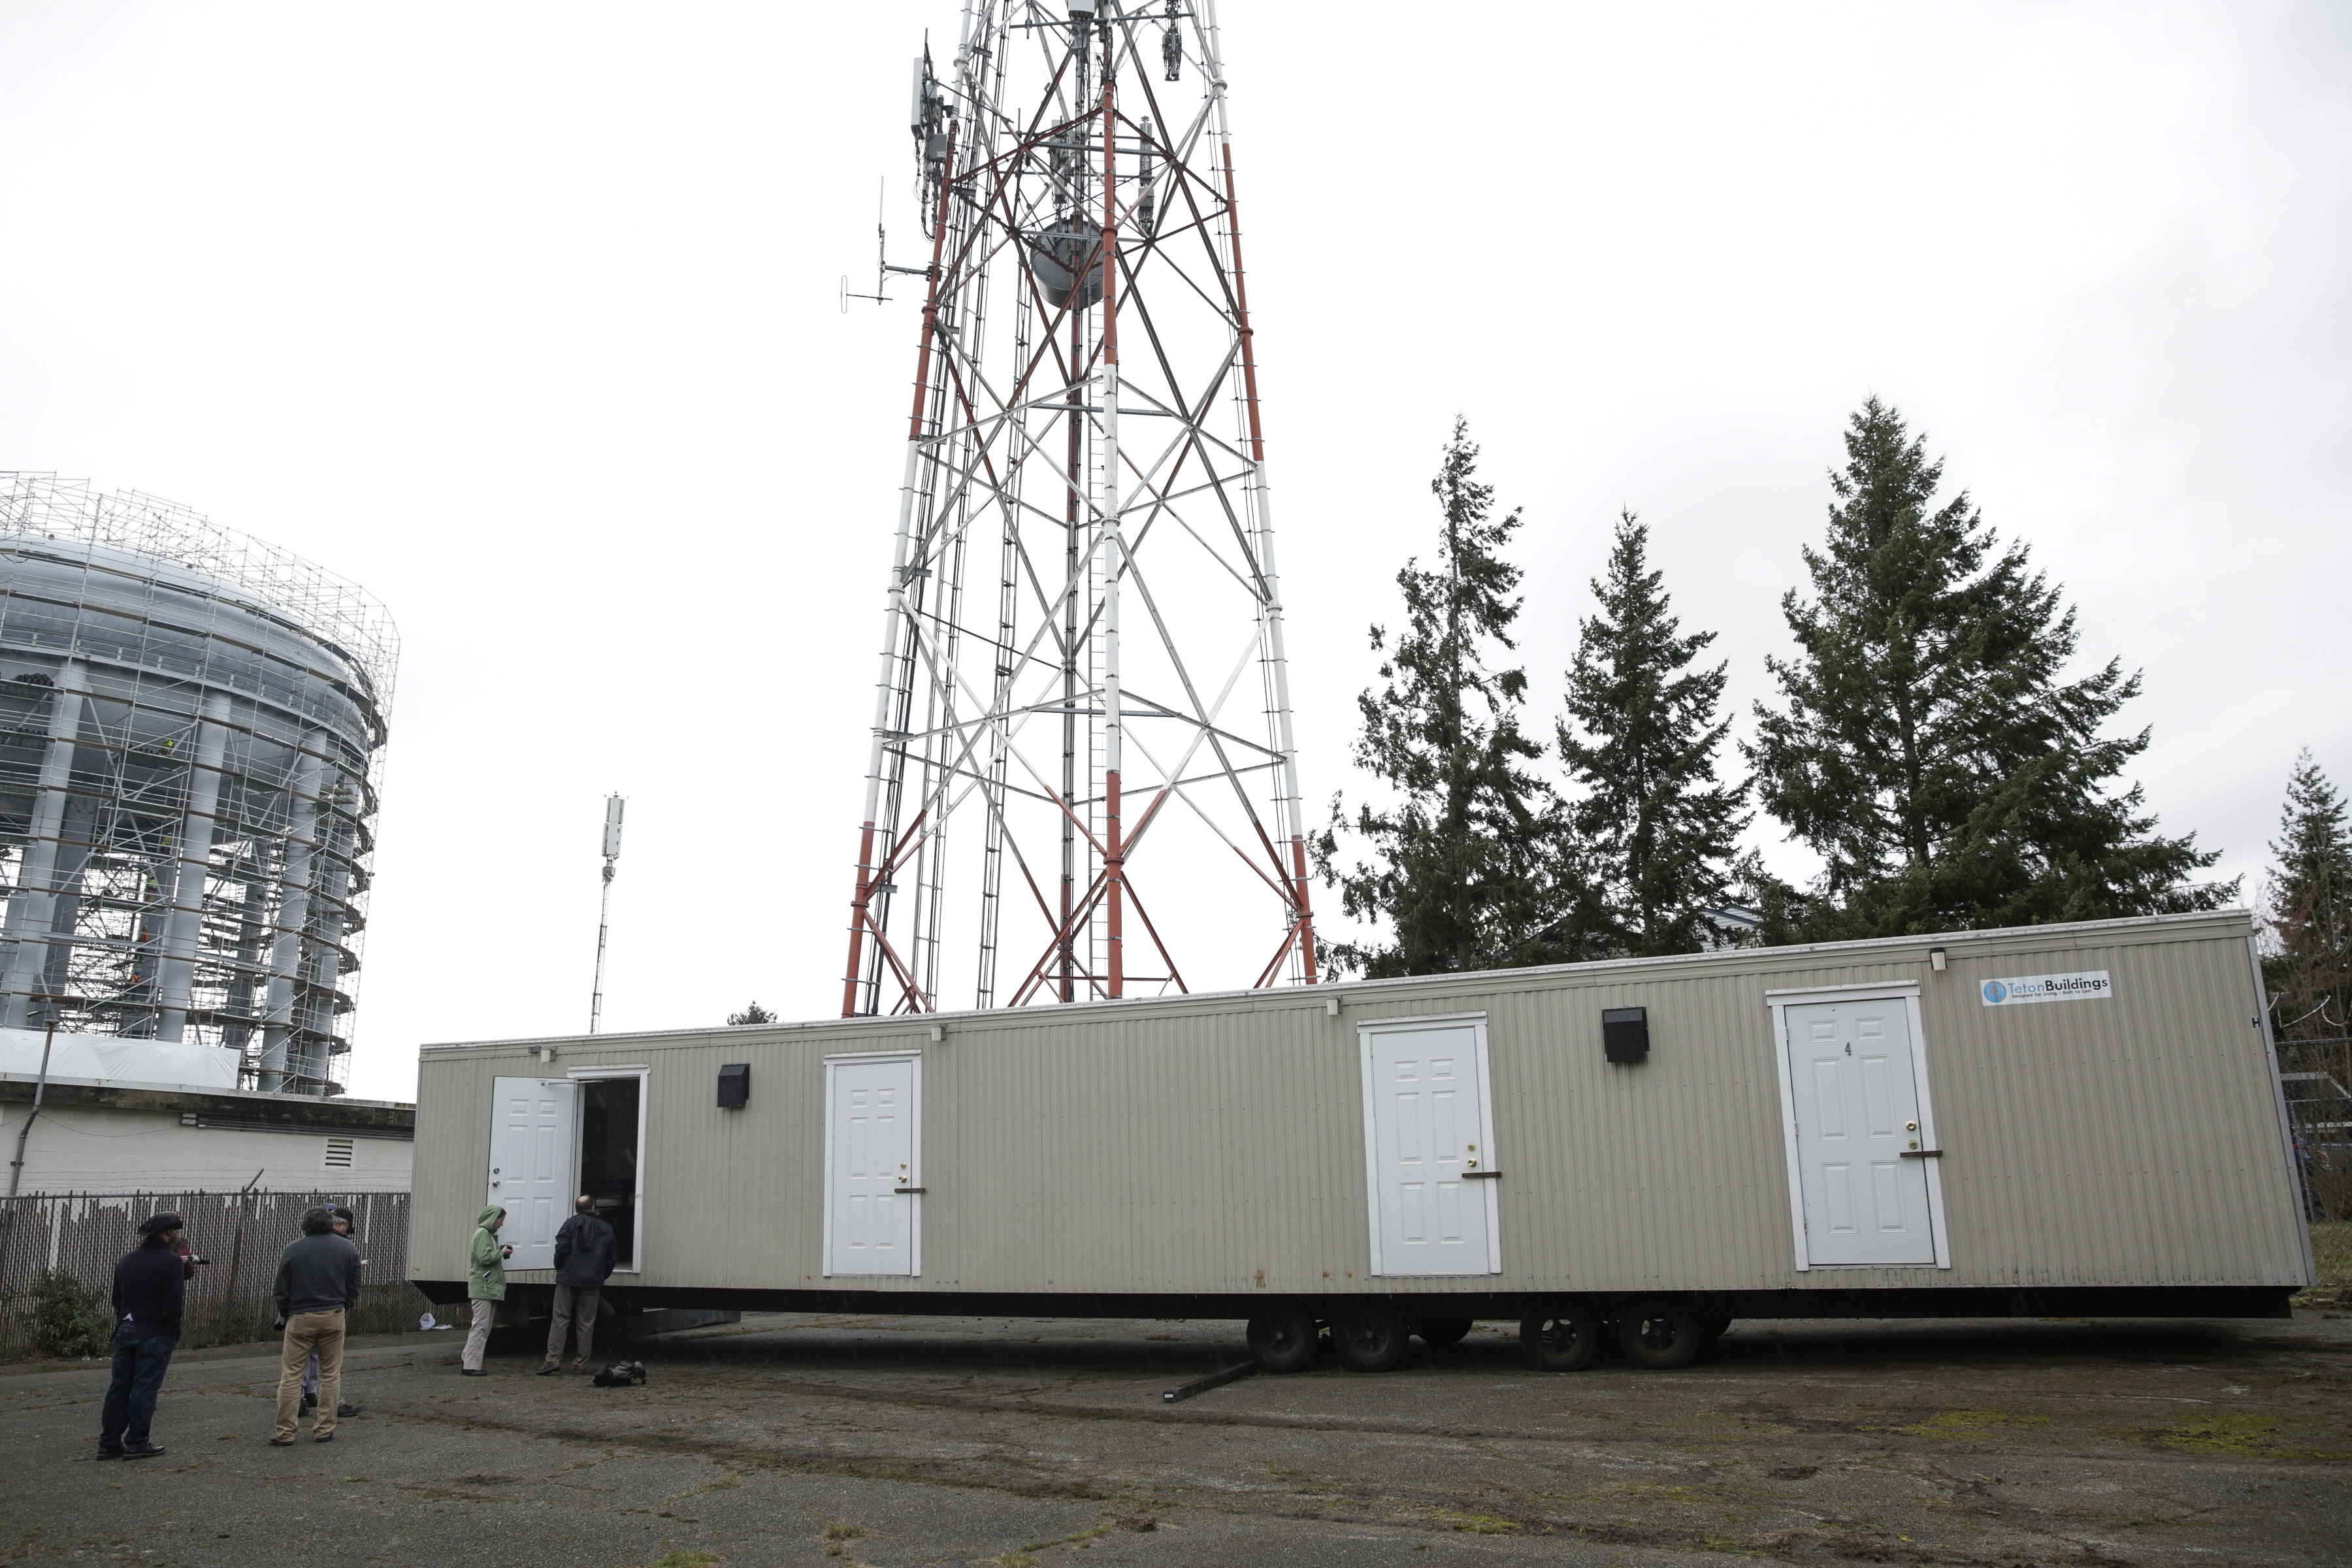 Media tours the first of 18 four-room modular housing units being prepared for patient accommodation during treatment and isolation in King County's response to coronavirus on a site in White Center, south of Seattle, Washington on Tuesday, March 3.